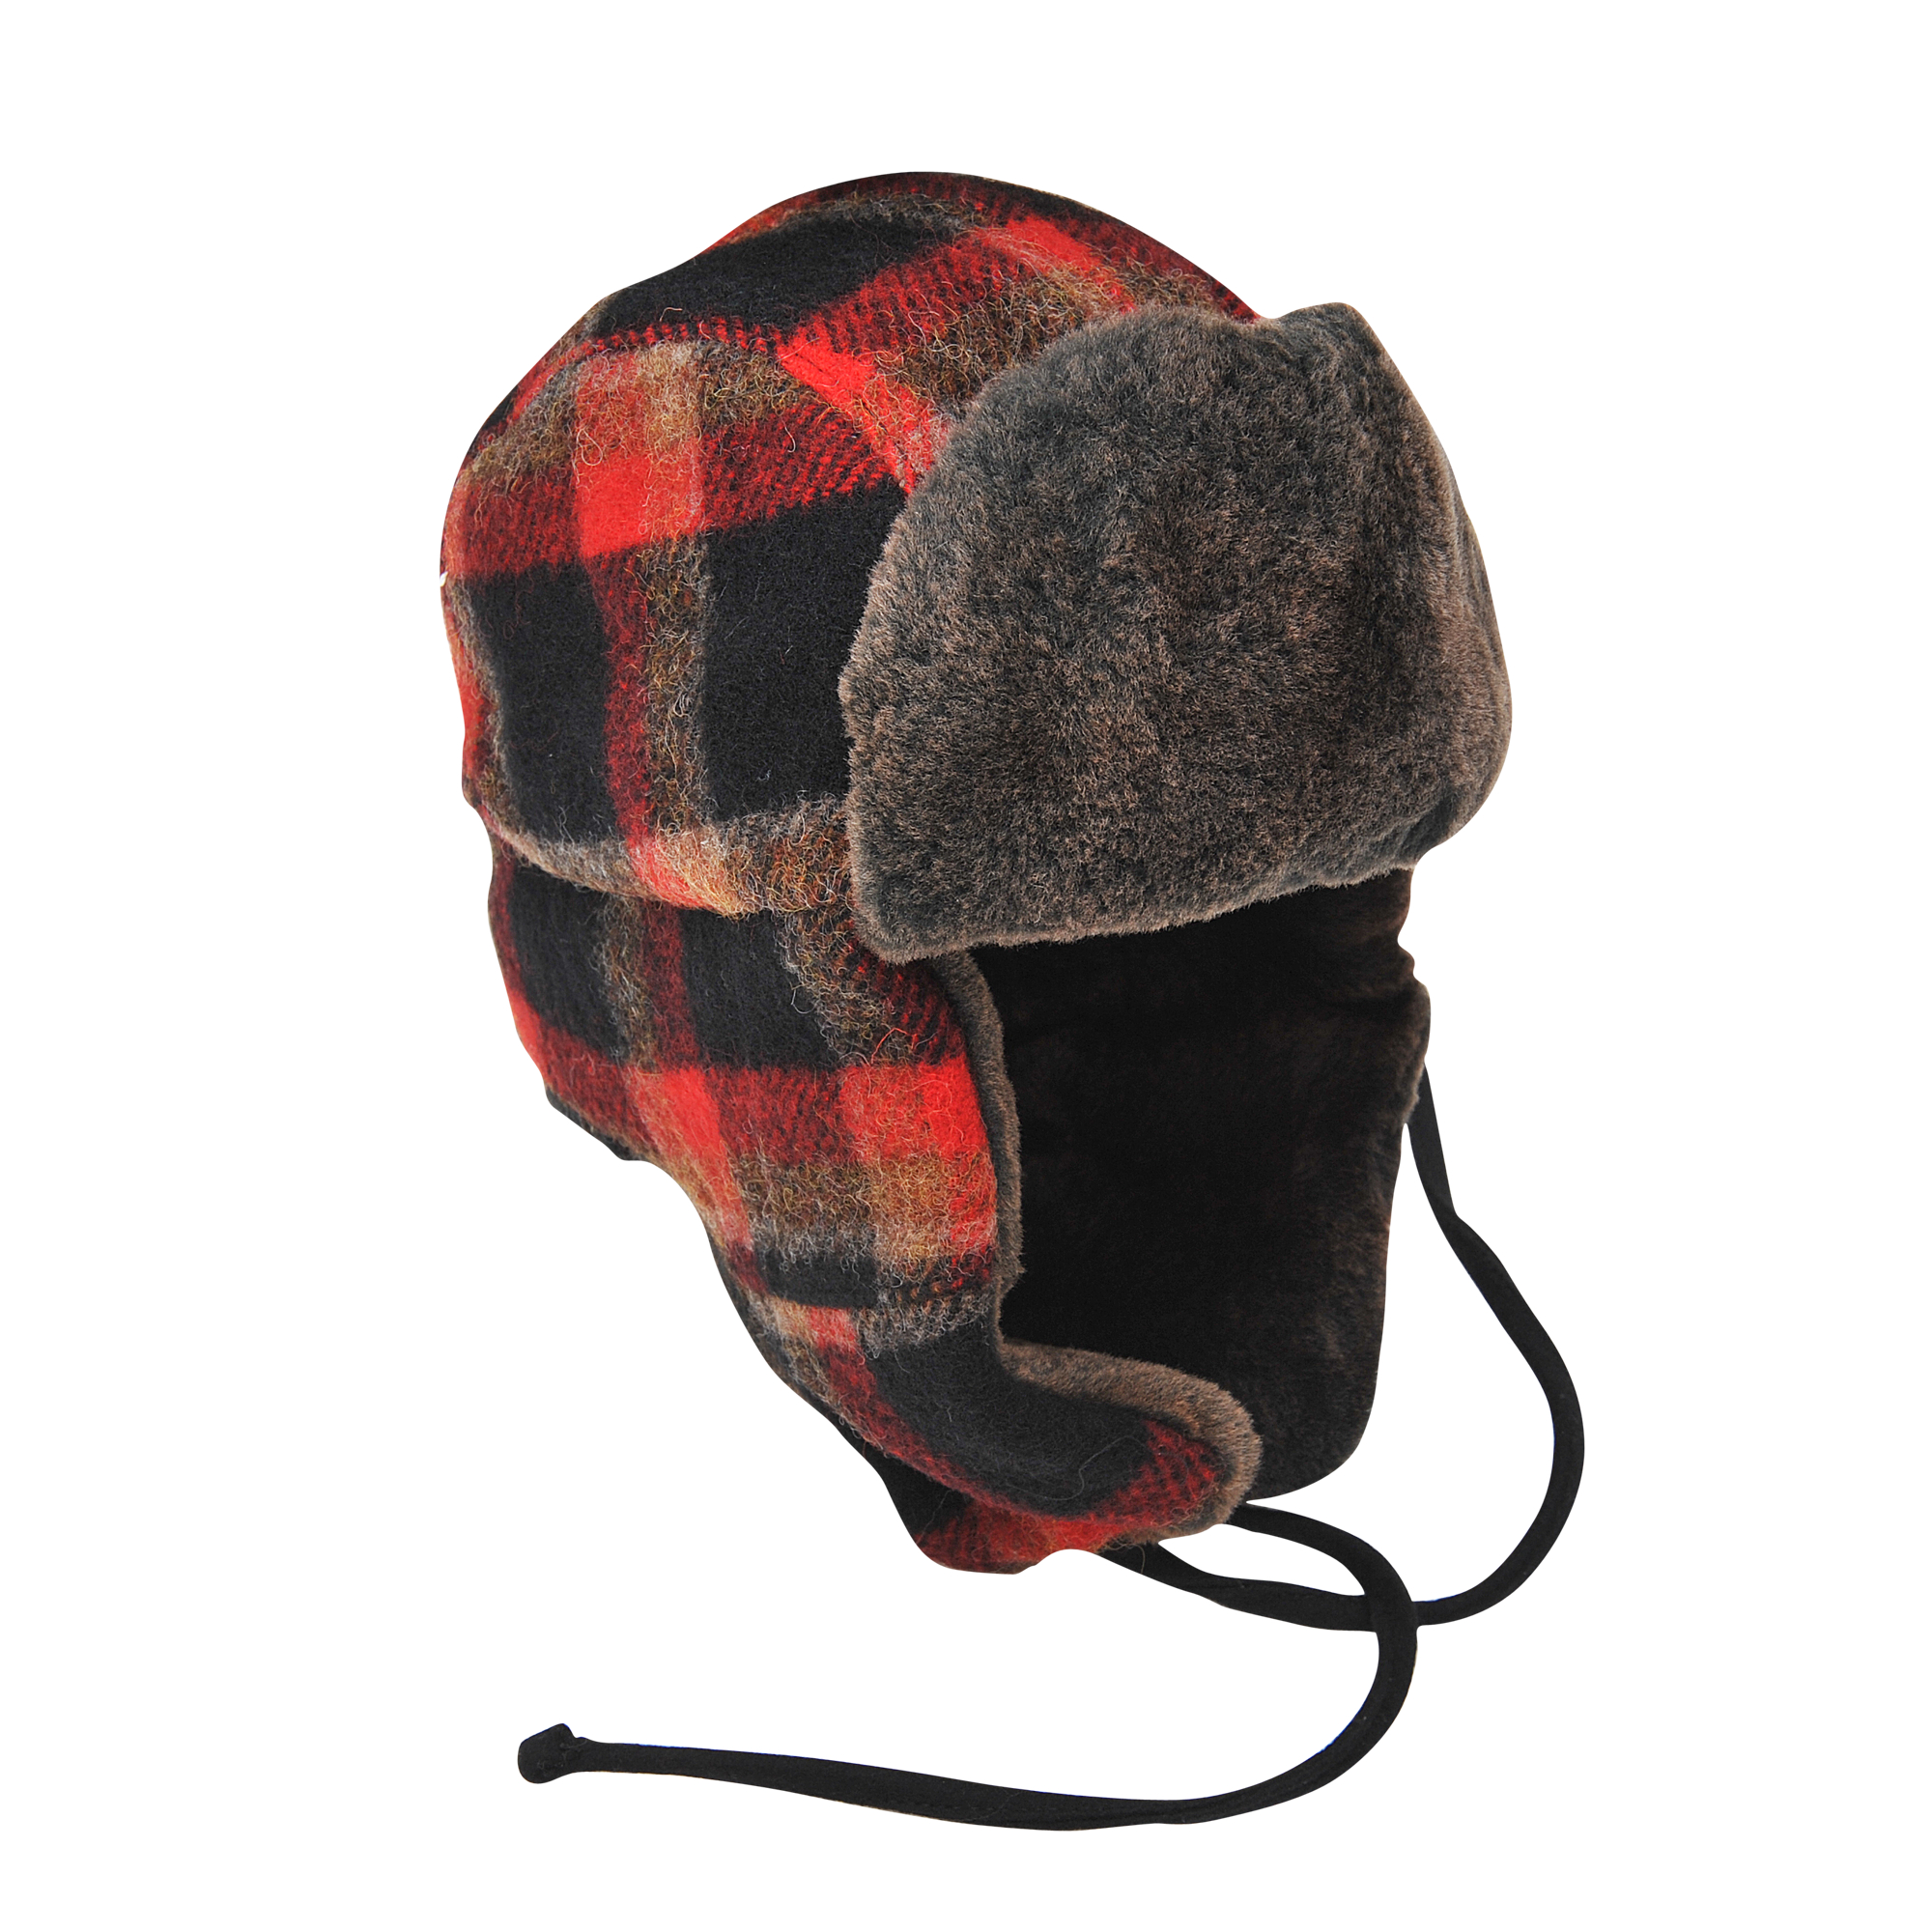 Lyst - Stetson Clovis Plaid Trapper Hat in Black 66acb09061c